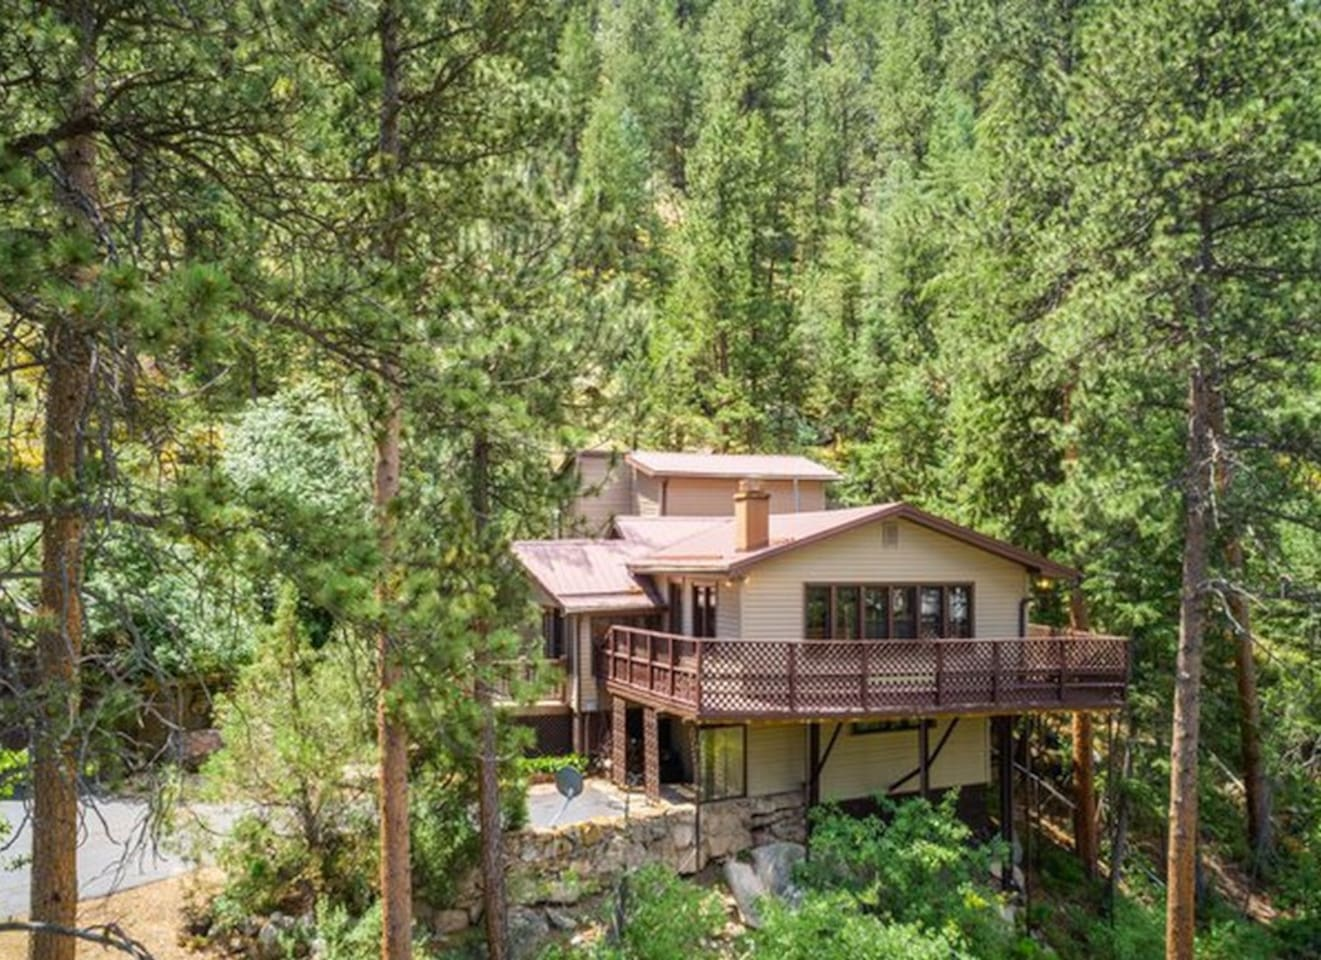 Come enjoy the deck above the Big Thompson River